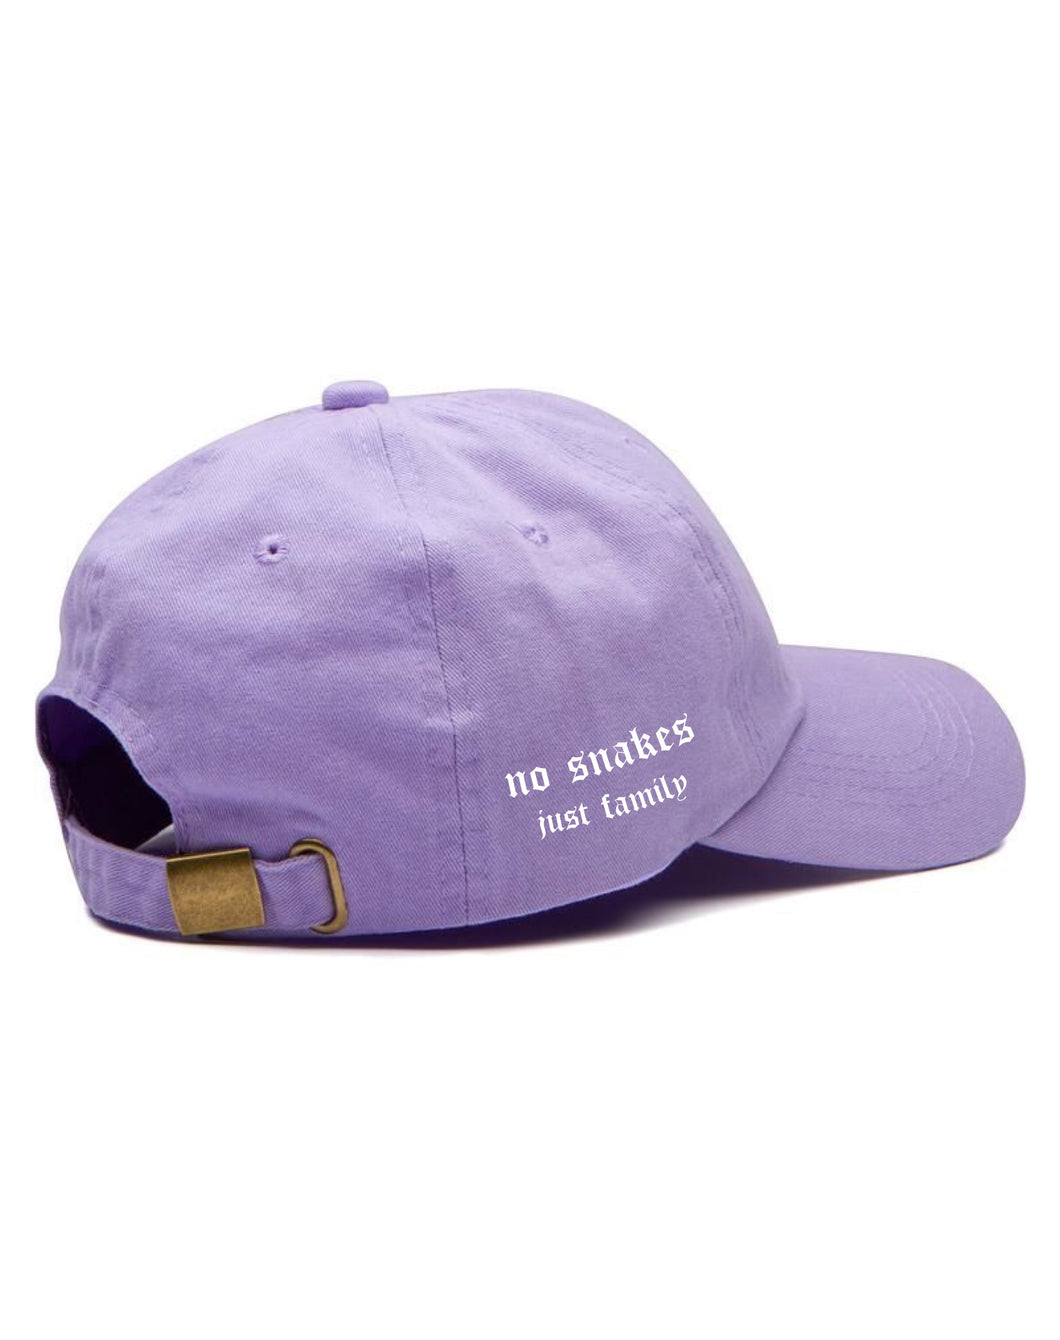 Just Family - Purple Dad Hat